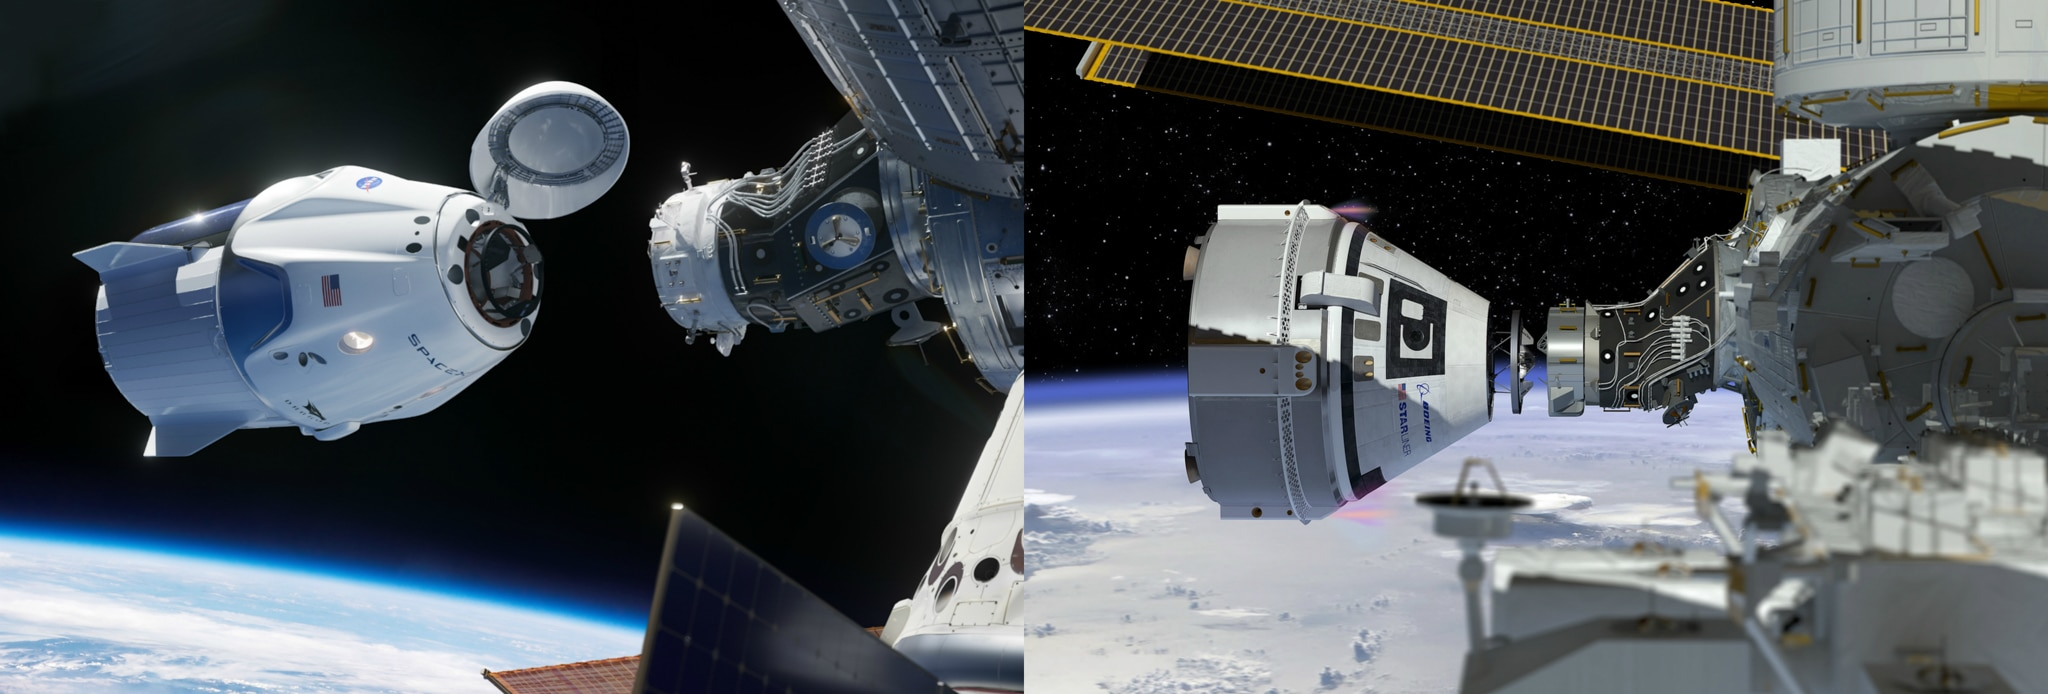 Compilation of two artist's perspectives, each of space capsule approaching space station (NASA)